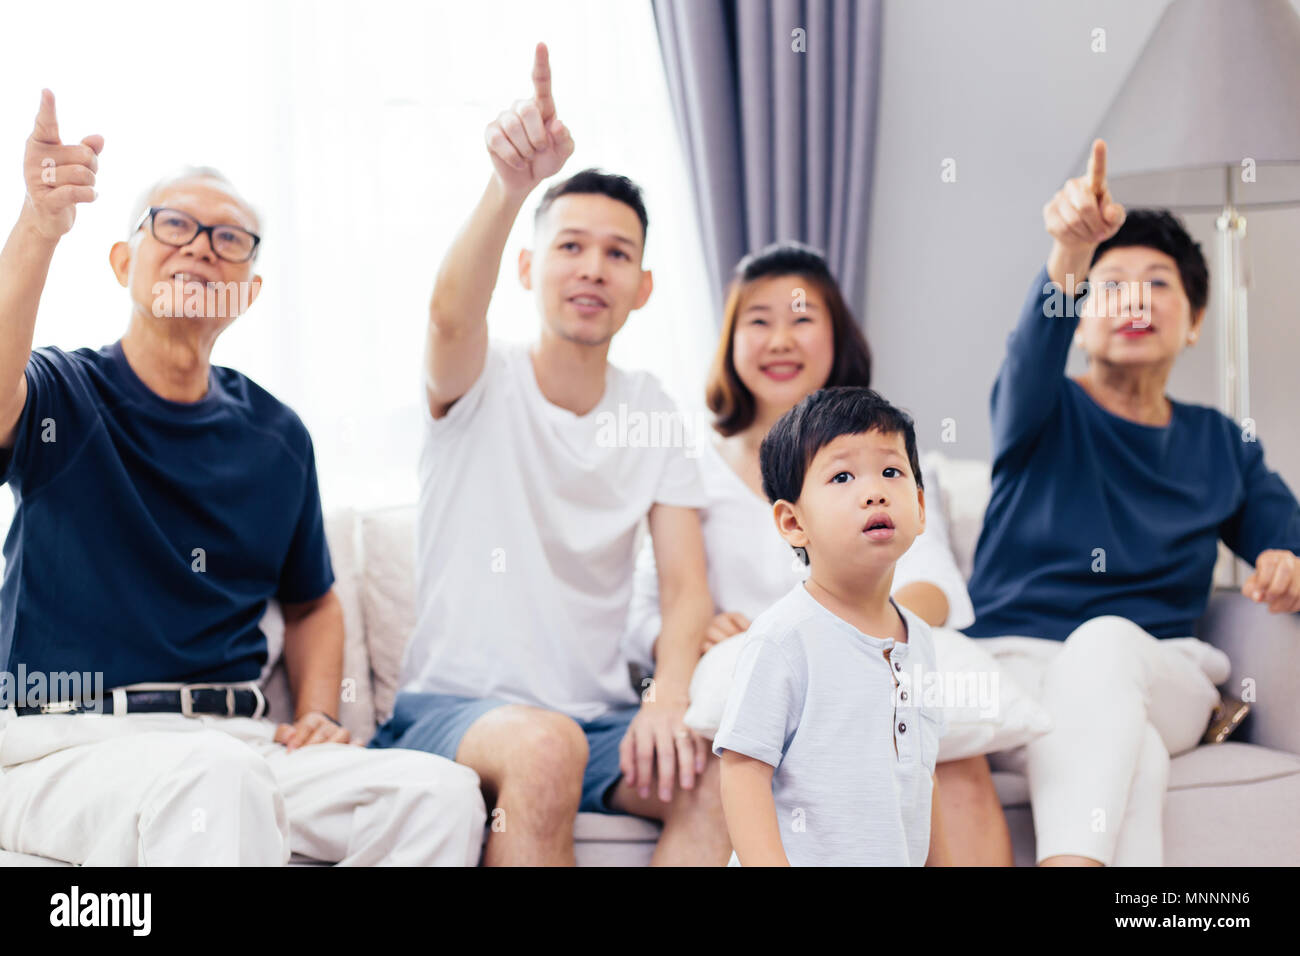 Asian extended family pointing out to something and the child is curious to look at it - Stock Image